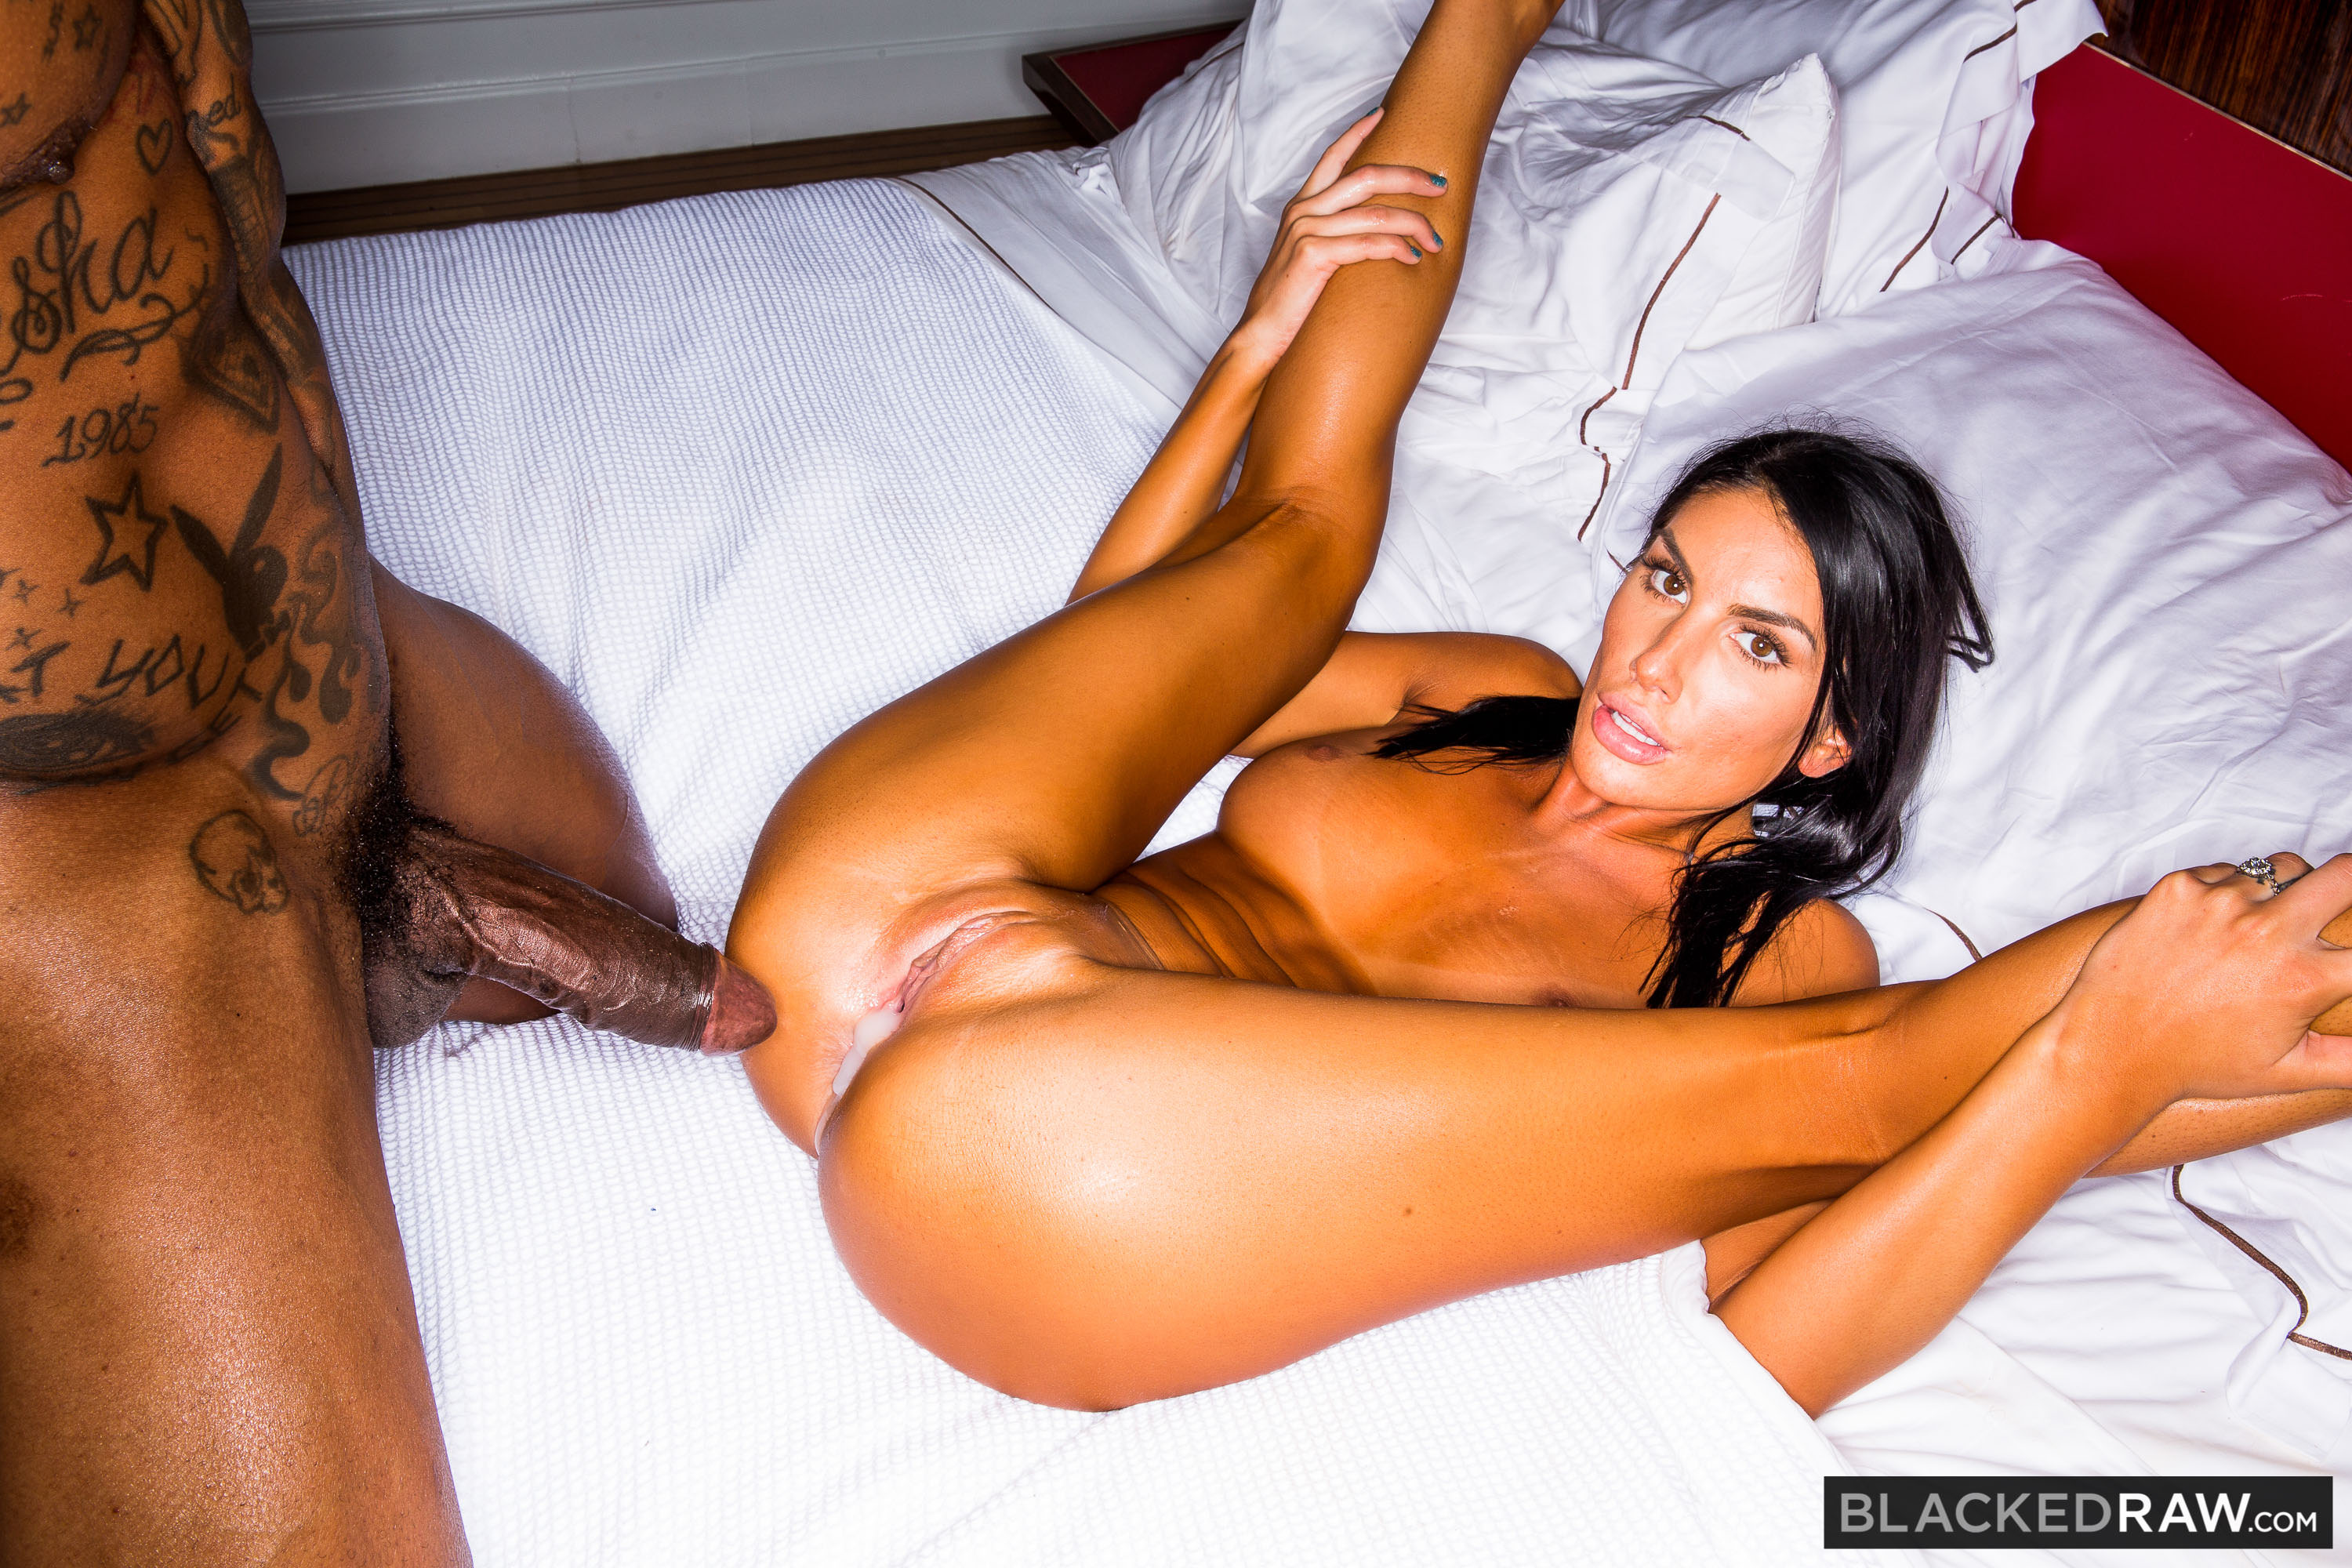 August Ames Blacked